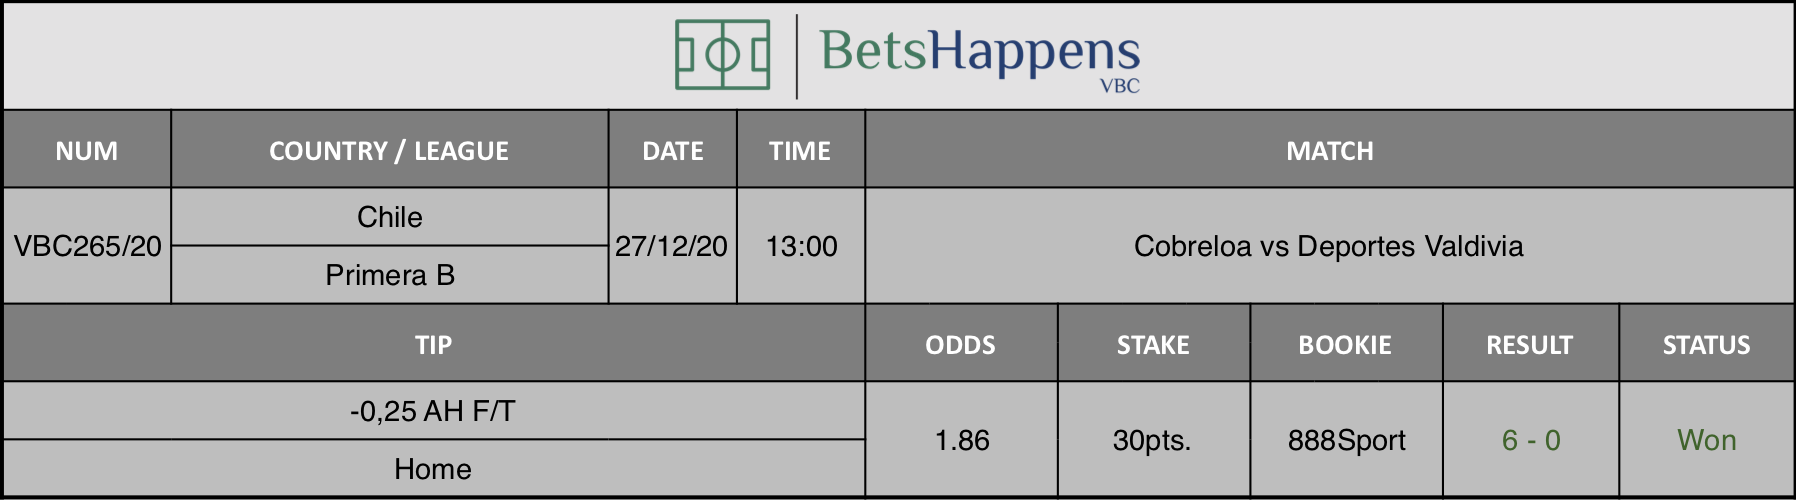 Results of our tip for the Cobreloa vs Deportes Valdivia match where -0,25 AH F/T Home is recommended.